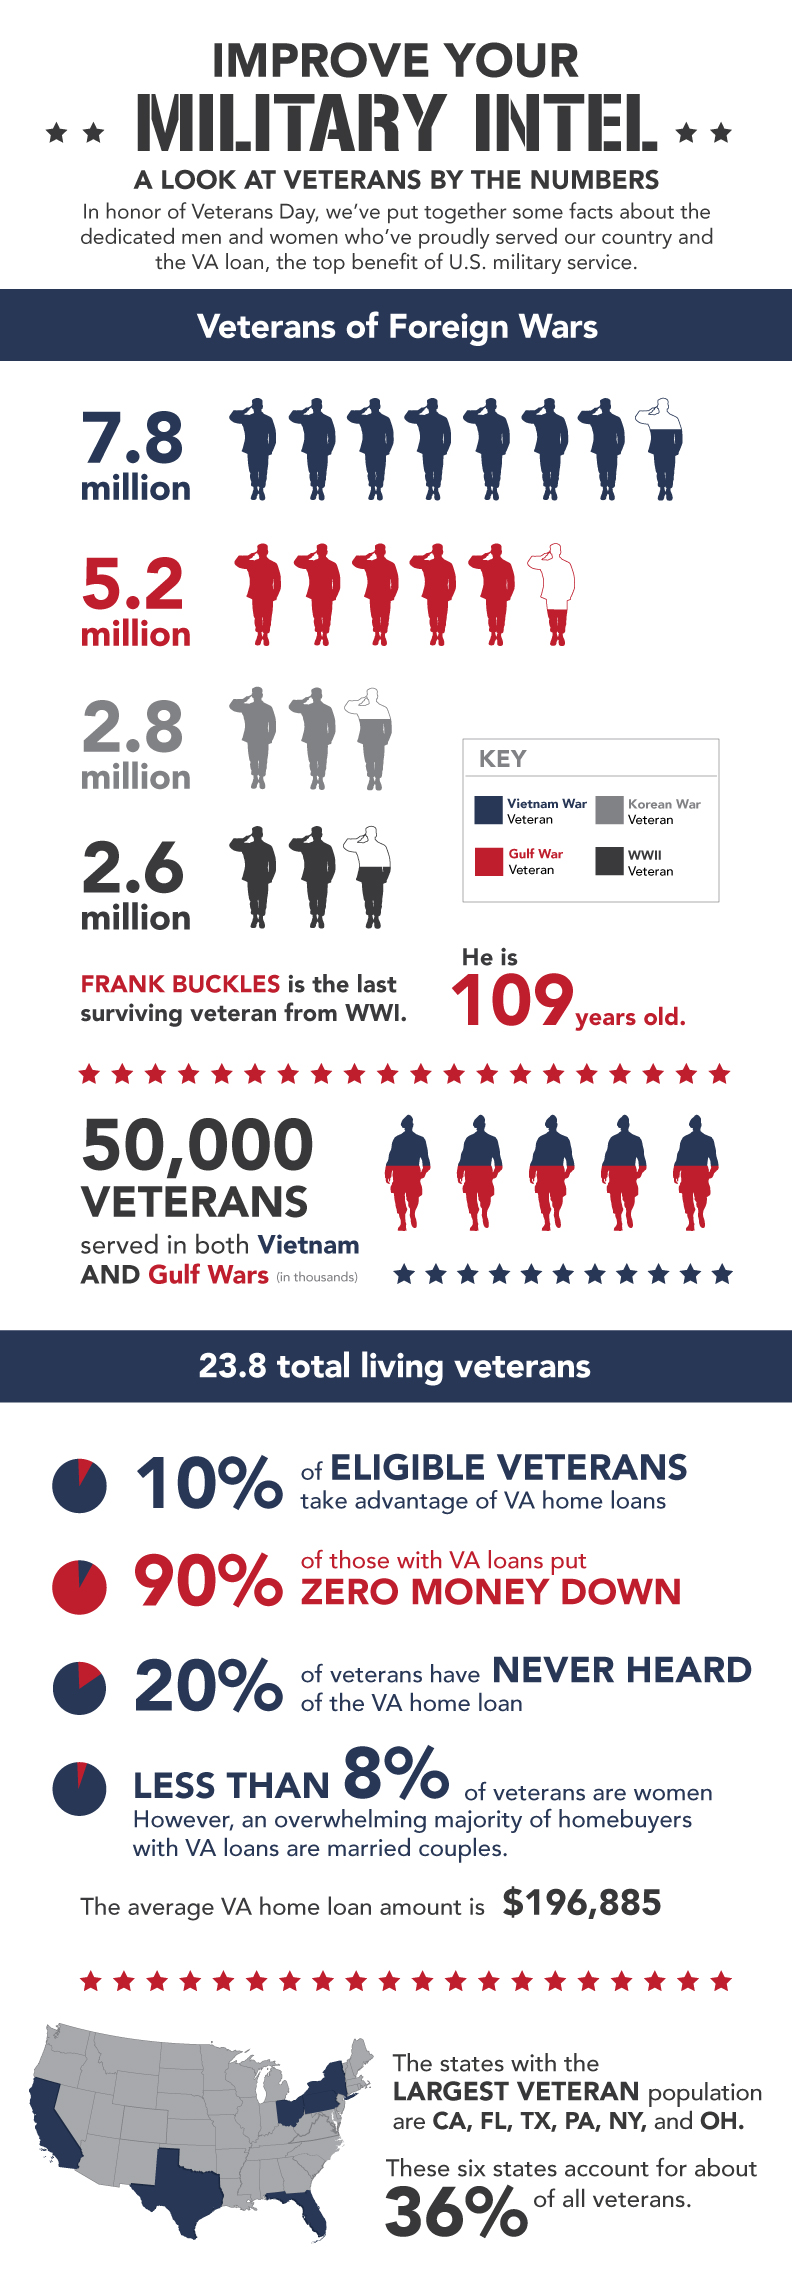 US Veterans by the Numbers